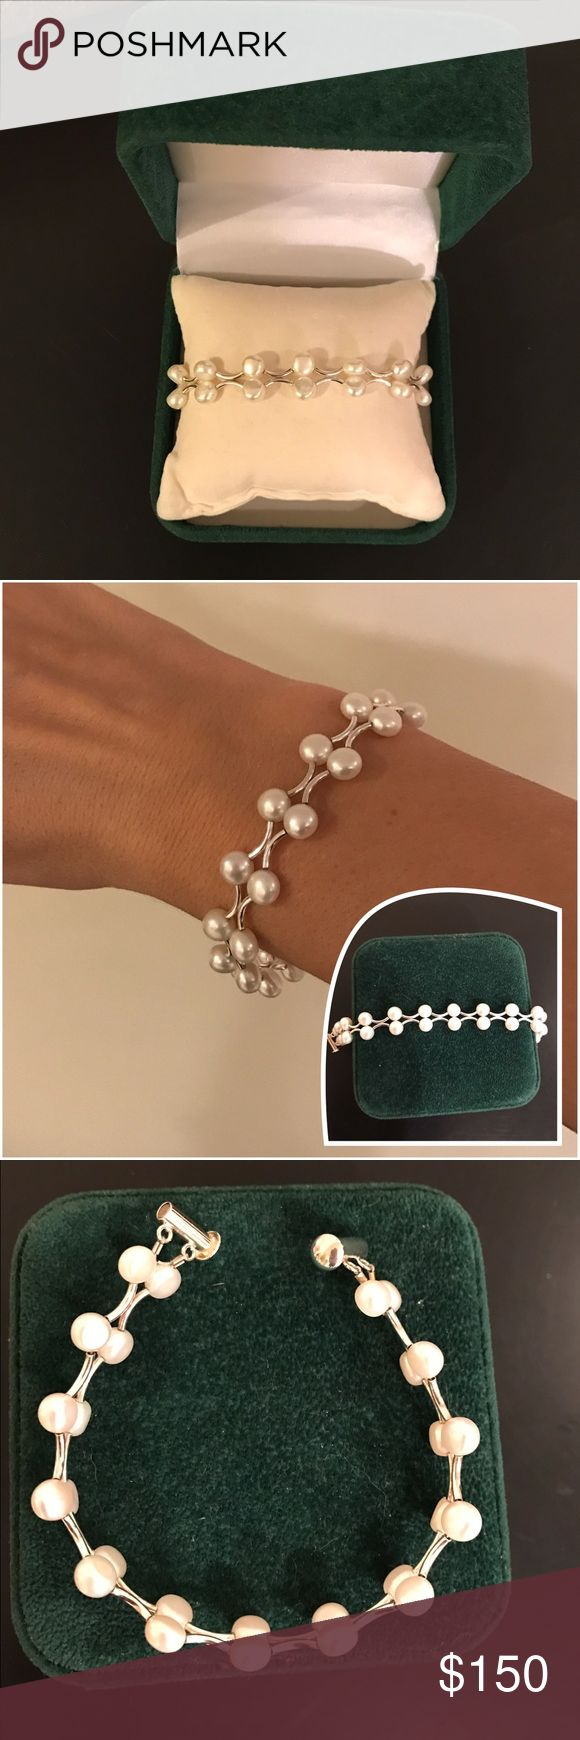 Pearl Bracelet ❤️Perfect for Valentine's Day❤️ Beautiful Pearl bracelet. Very elegant, and sophisticated. Magnetic fasteners. Purchased at Quinn's Goldsmith Jewelry store. Pair it with some pearl earrings to complete the look!! (Sold separately, See closet)   Measurements:  🔸8 inches long 🔸3/4inch thick  **BONUS**Case included If purchased asking price!** No trades please, OBO Bundle and save💵. Quinn's Goldsmith Jewelry Bracelets